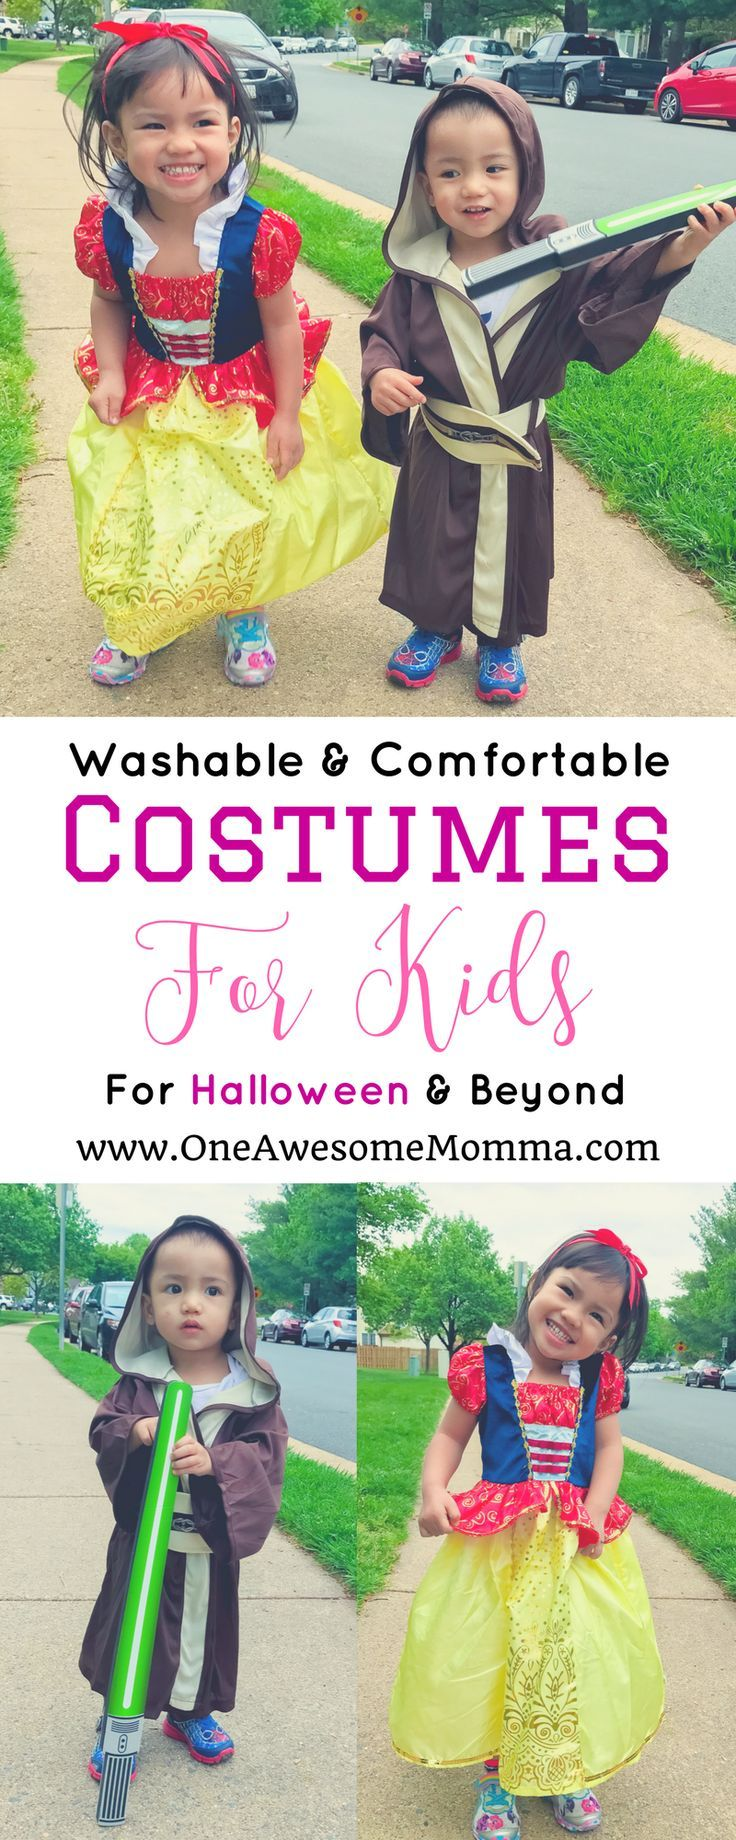 [ad] Are you looking for practical halloween costumes for your kids that they can use even after halloween? This post tells you where to get washable & costumes for kids. | comfortable costumes halloween | comfortable costume ideas | toddler costumes | to